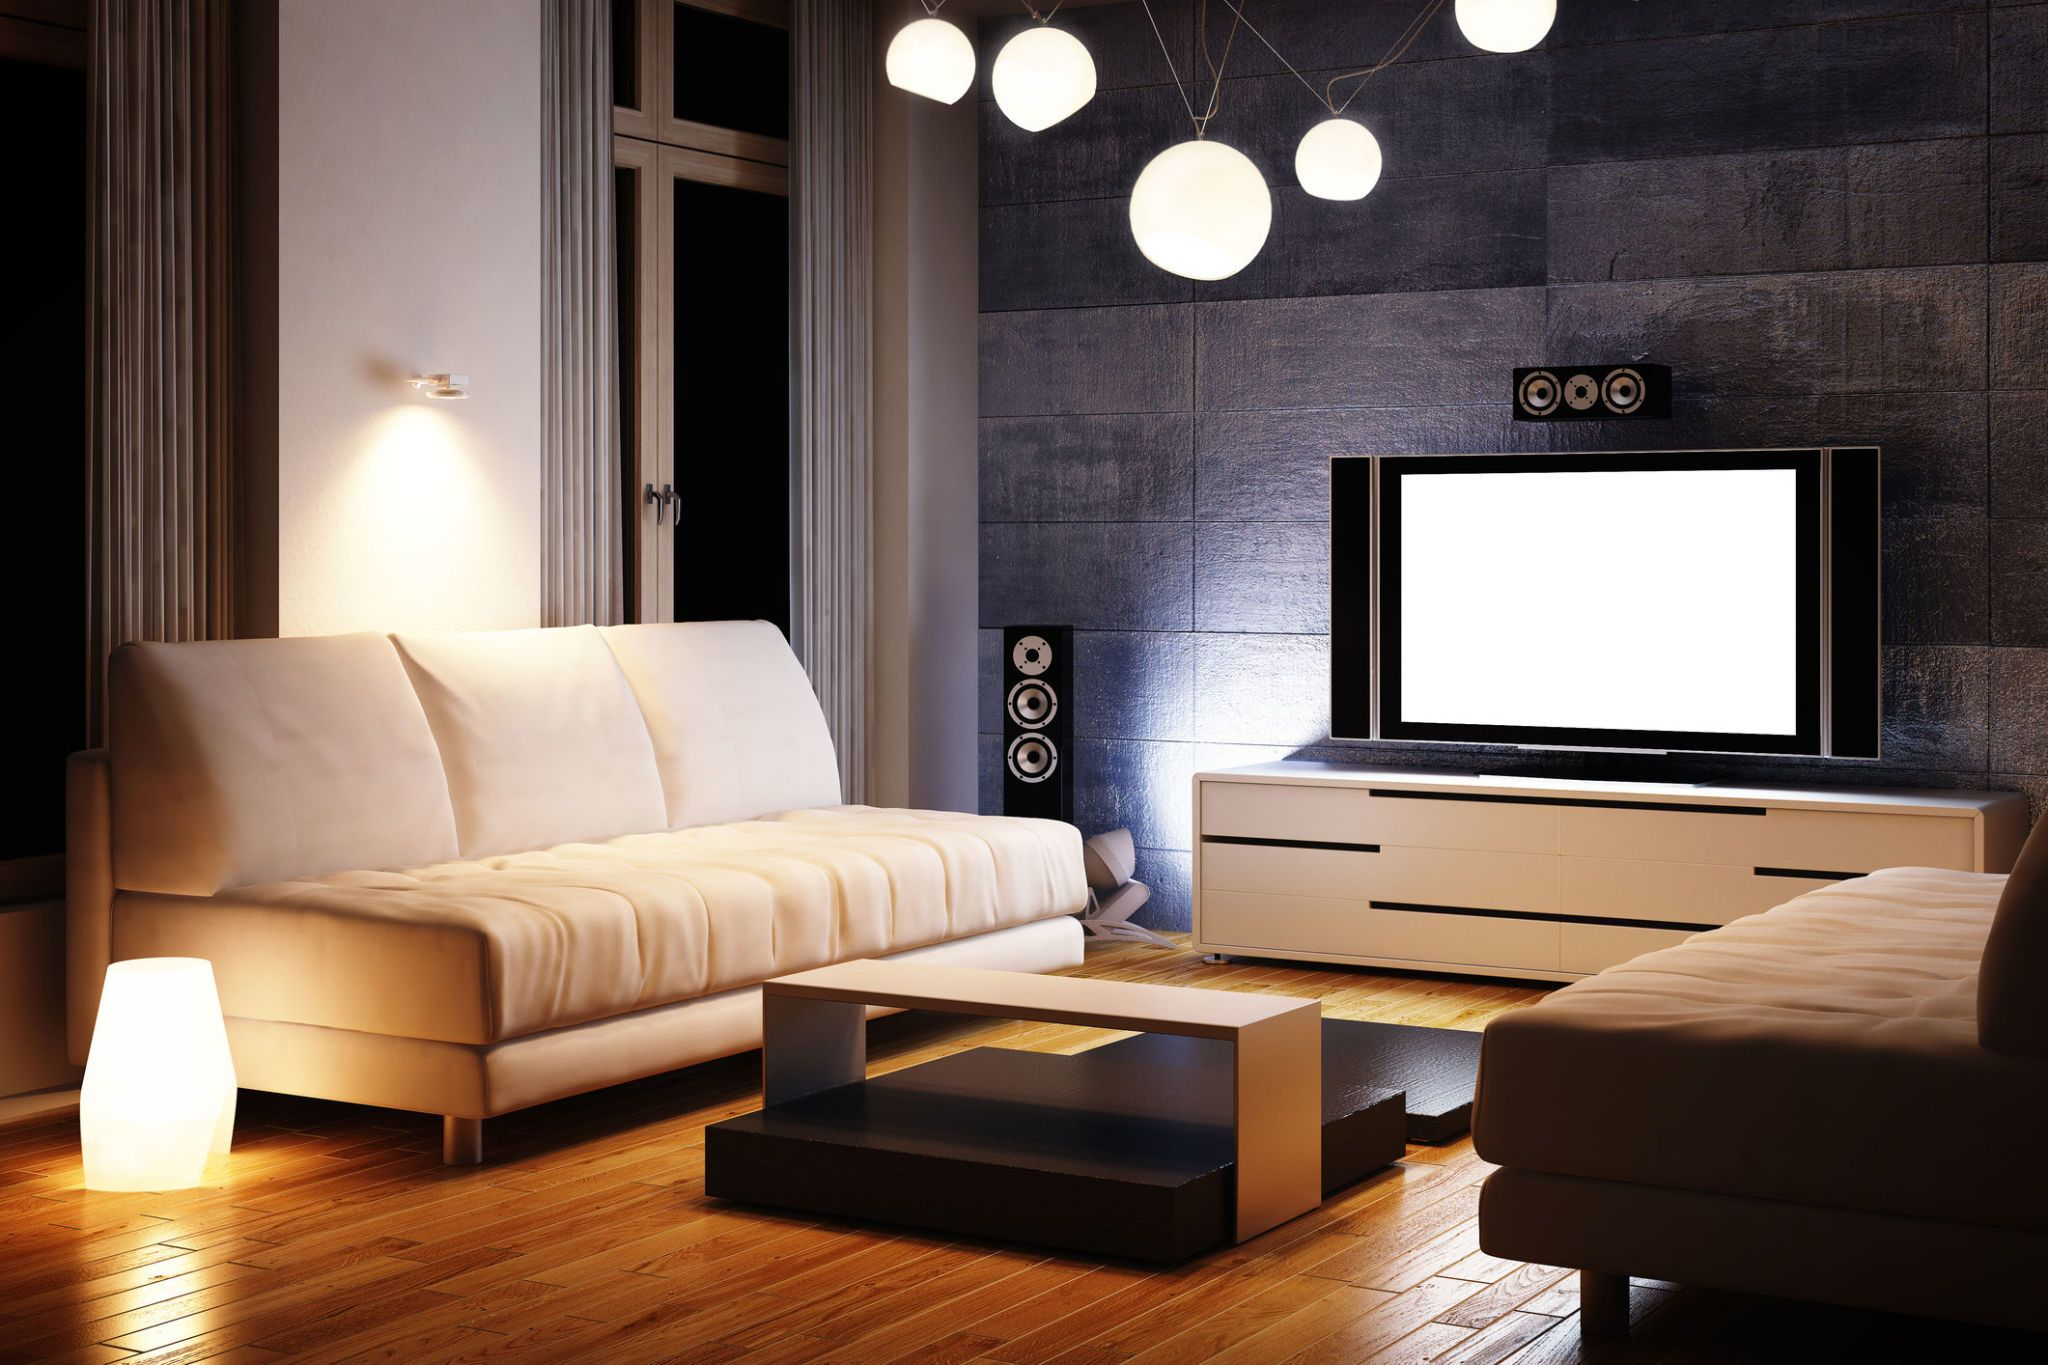 6 home lighting ideas to boost your moodHome Lighting Ideas #14